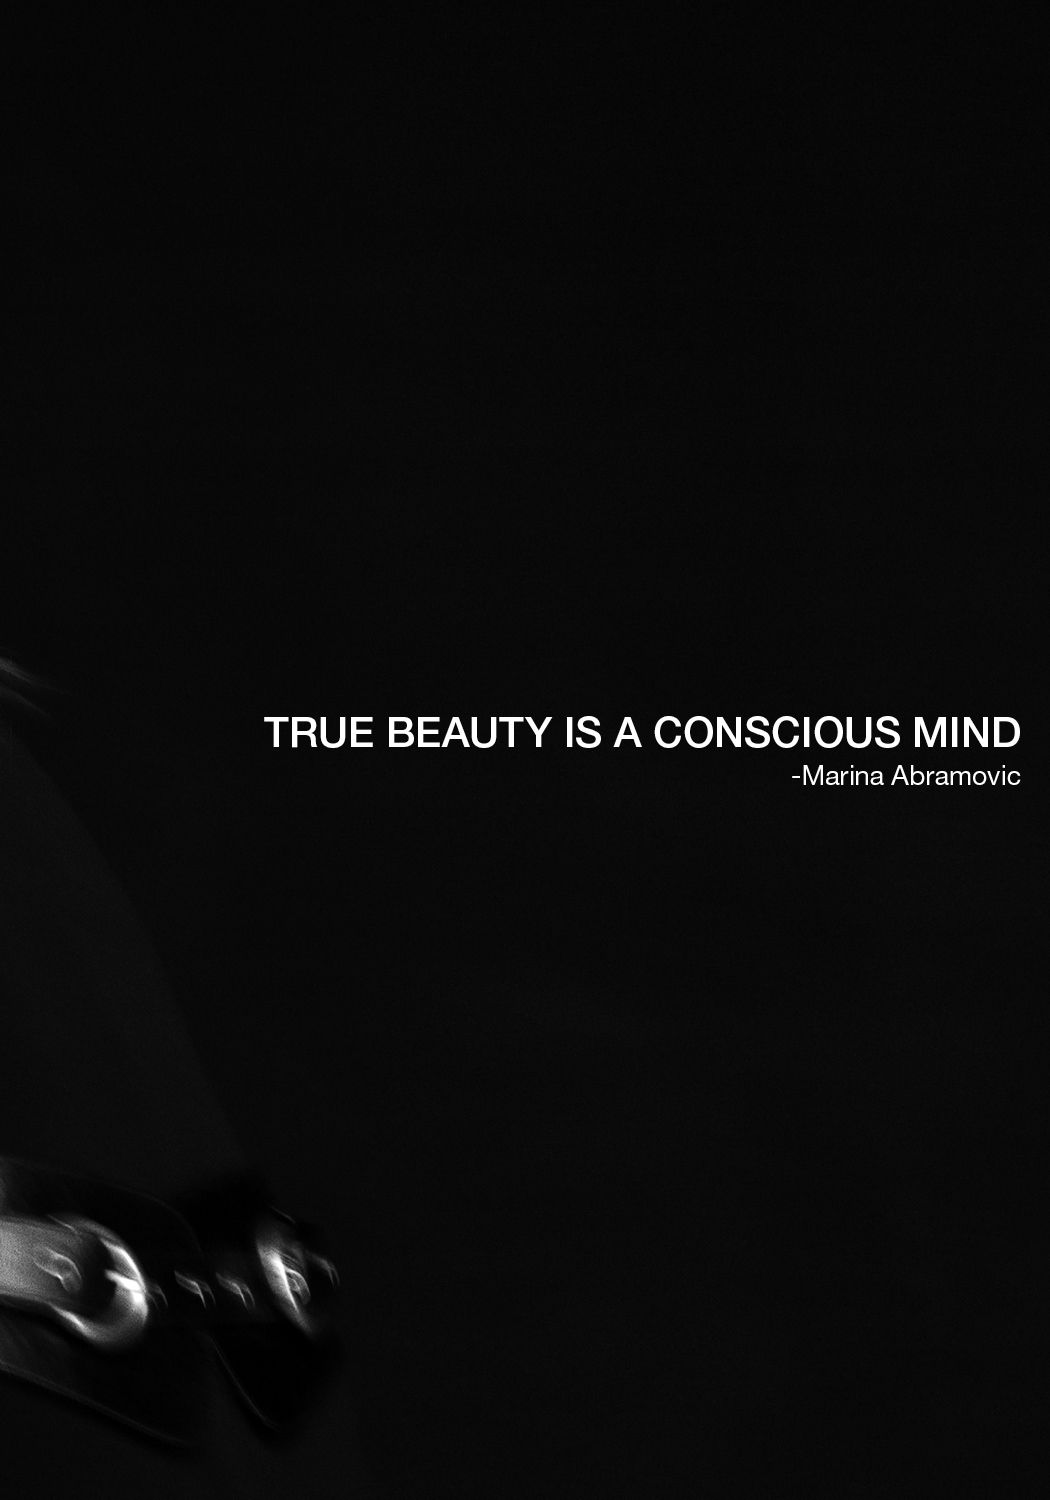 True beauty is a conscious mind